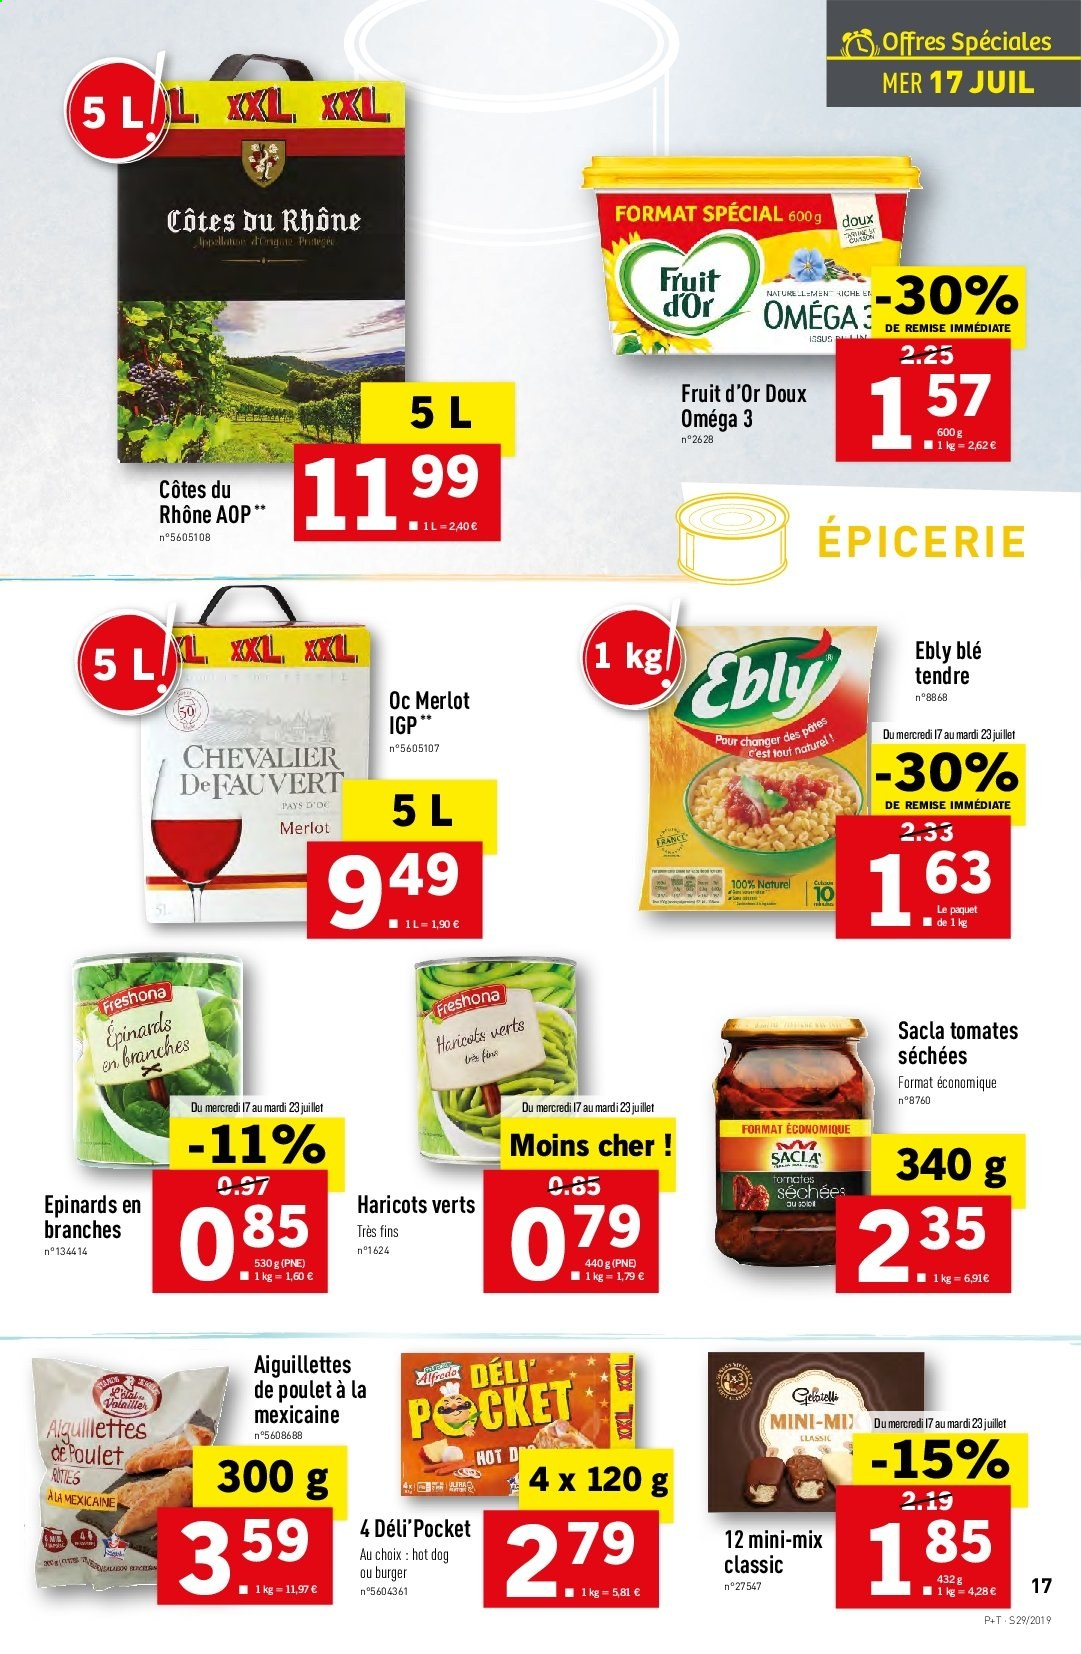 Catalogue Lidl - 17.07.2019 - 23.07.2019. Page 17.